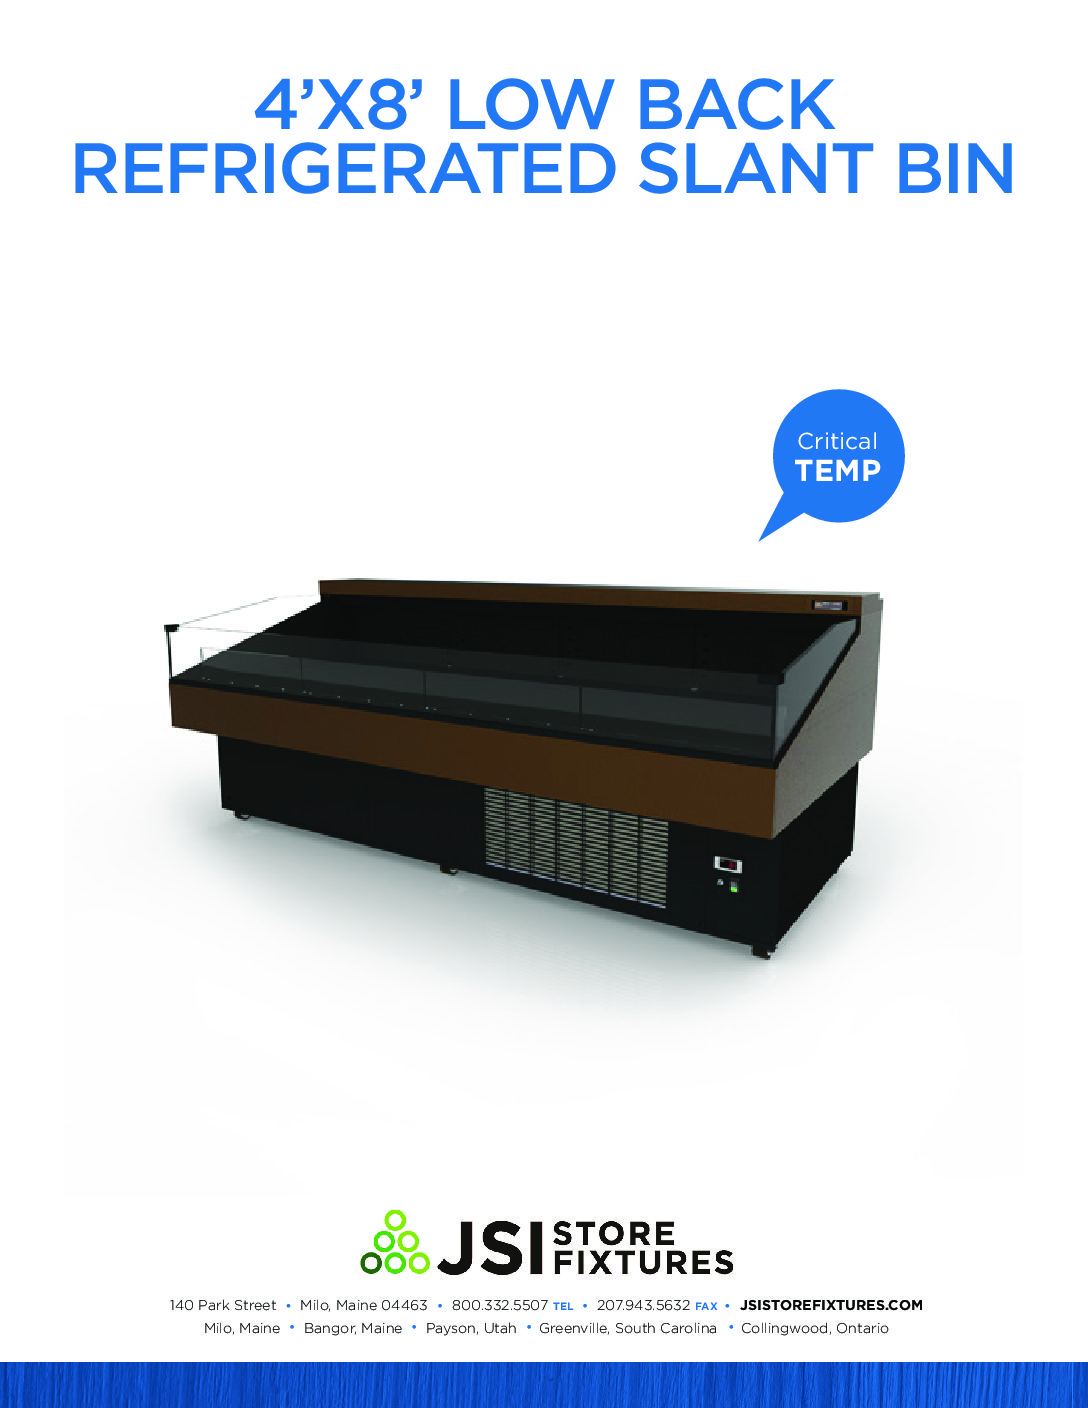 4'x8' Low Back Refrigerated Slant Bin Spec Sheet